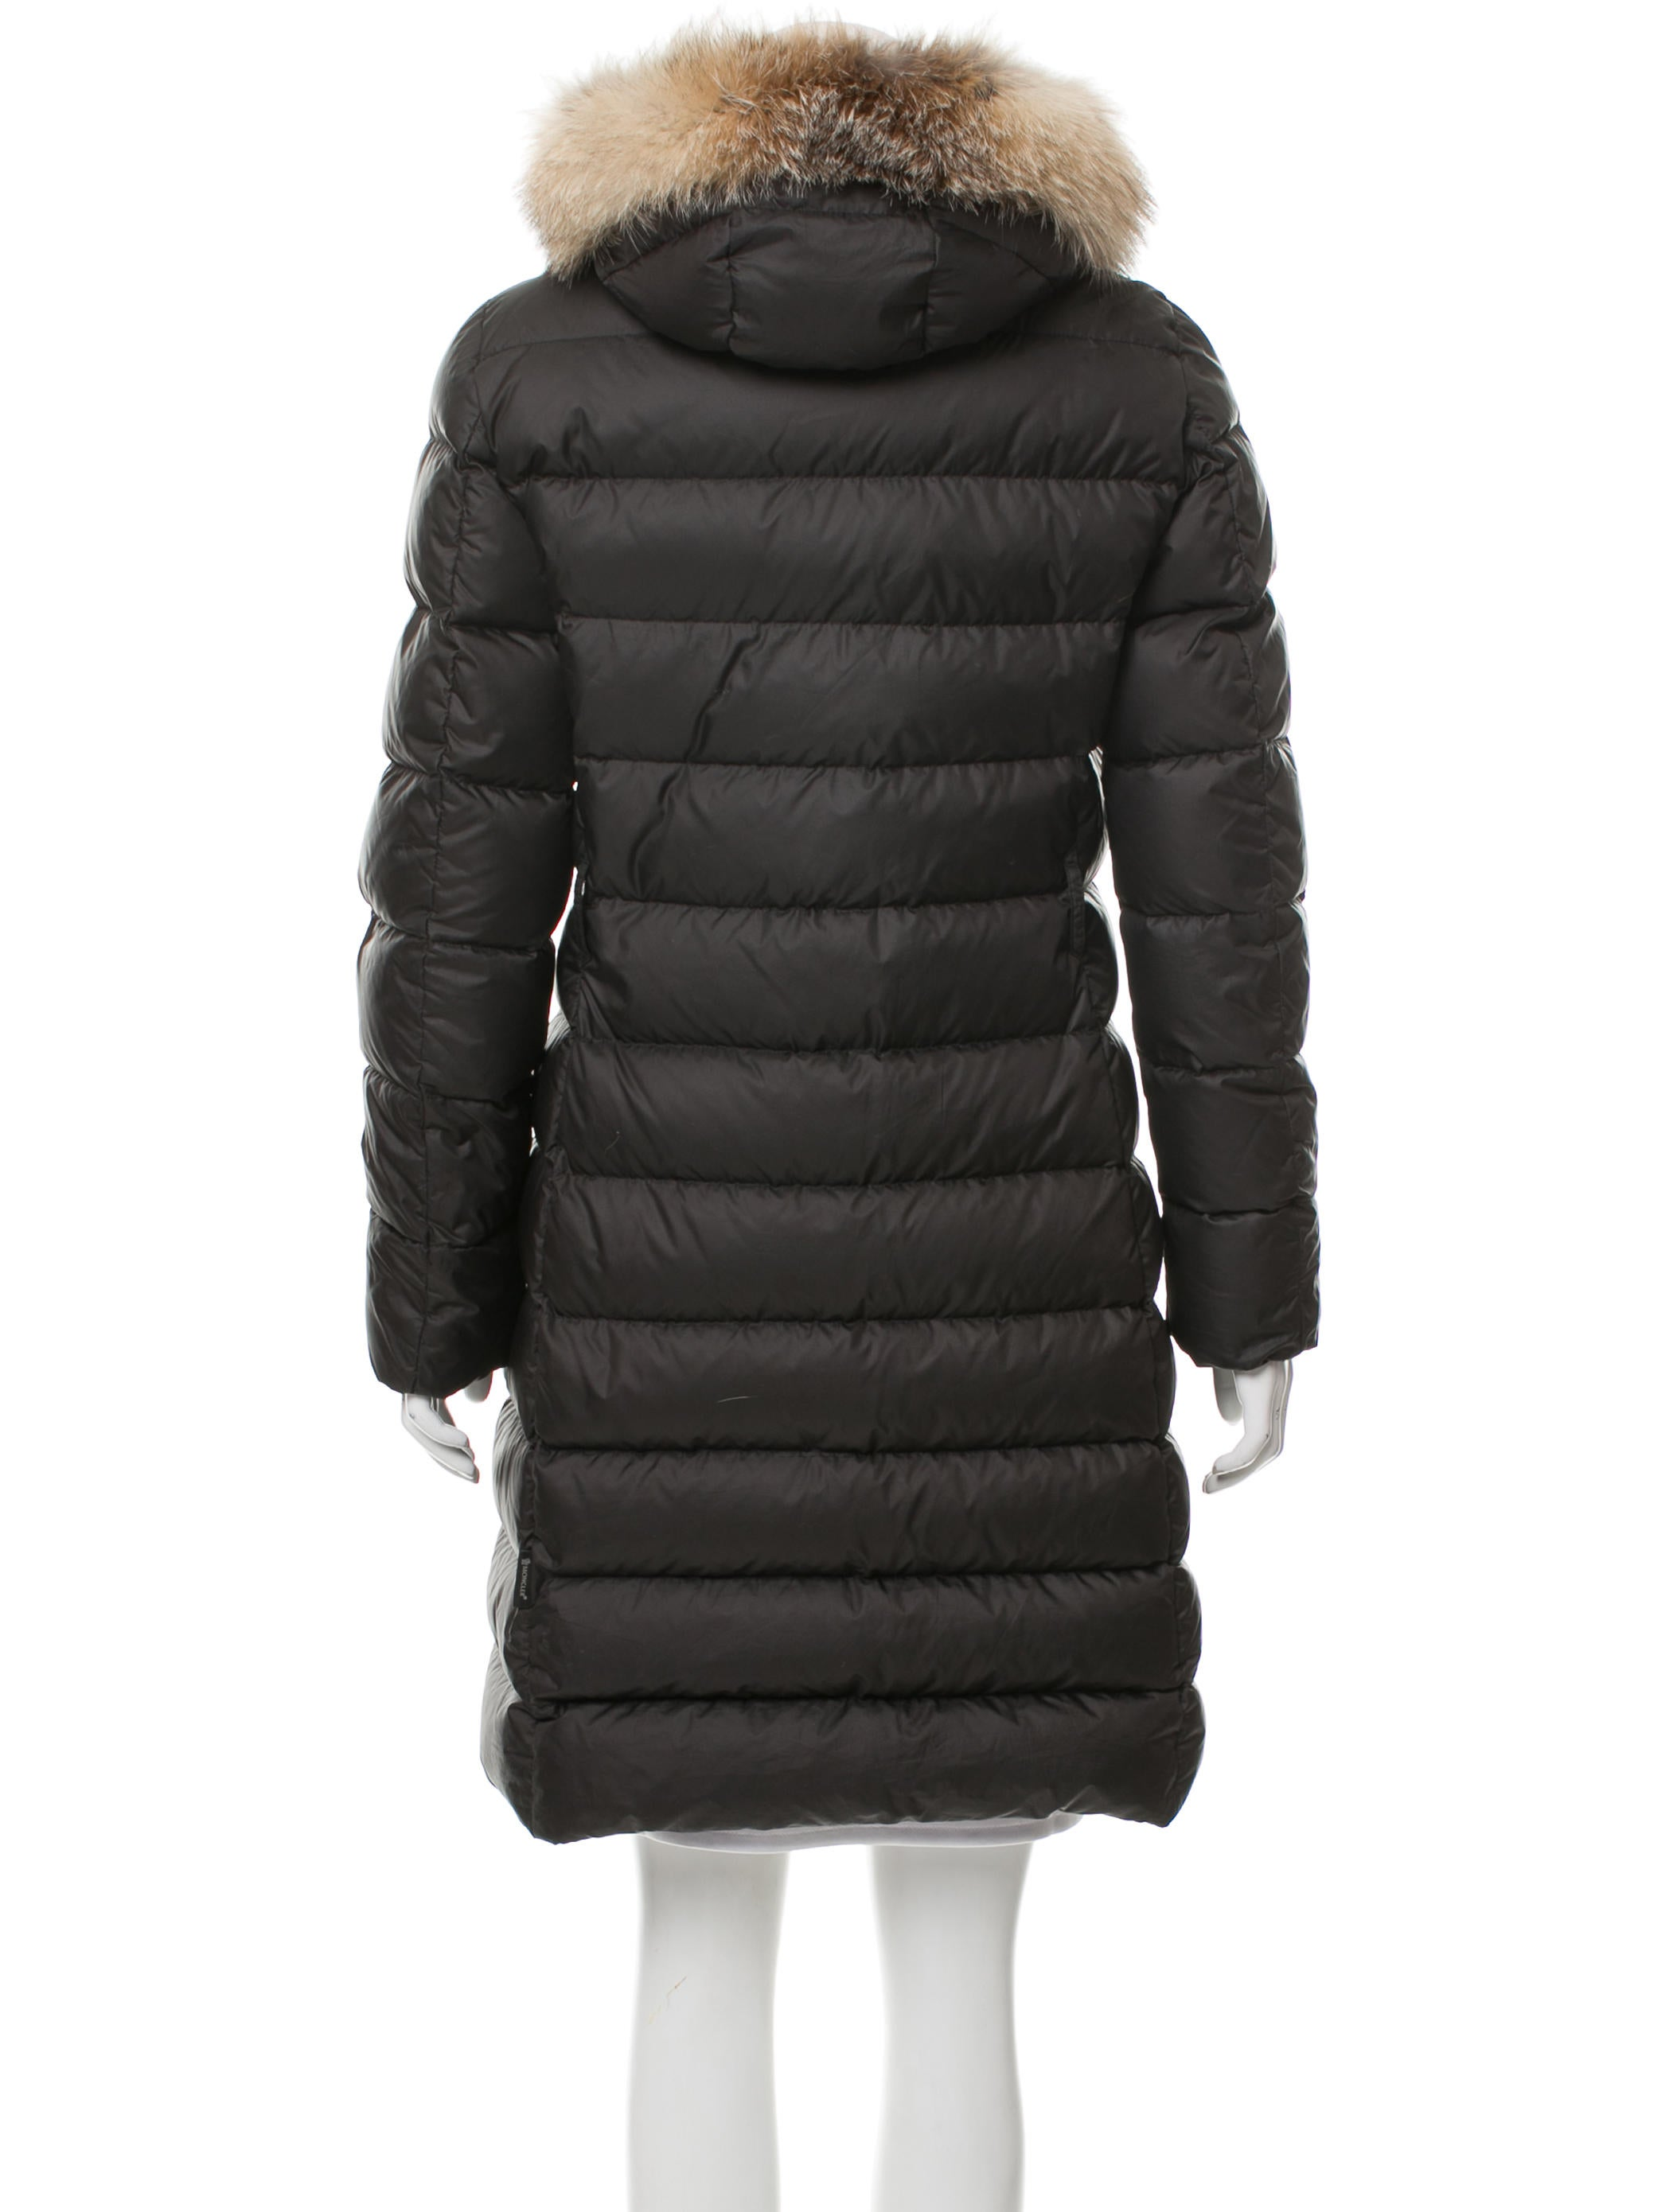 Moncler Fabrefox Fur Trim Puffer Coat Clothing MOC26824